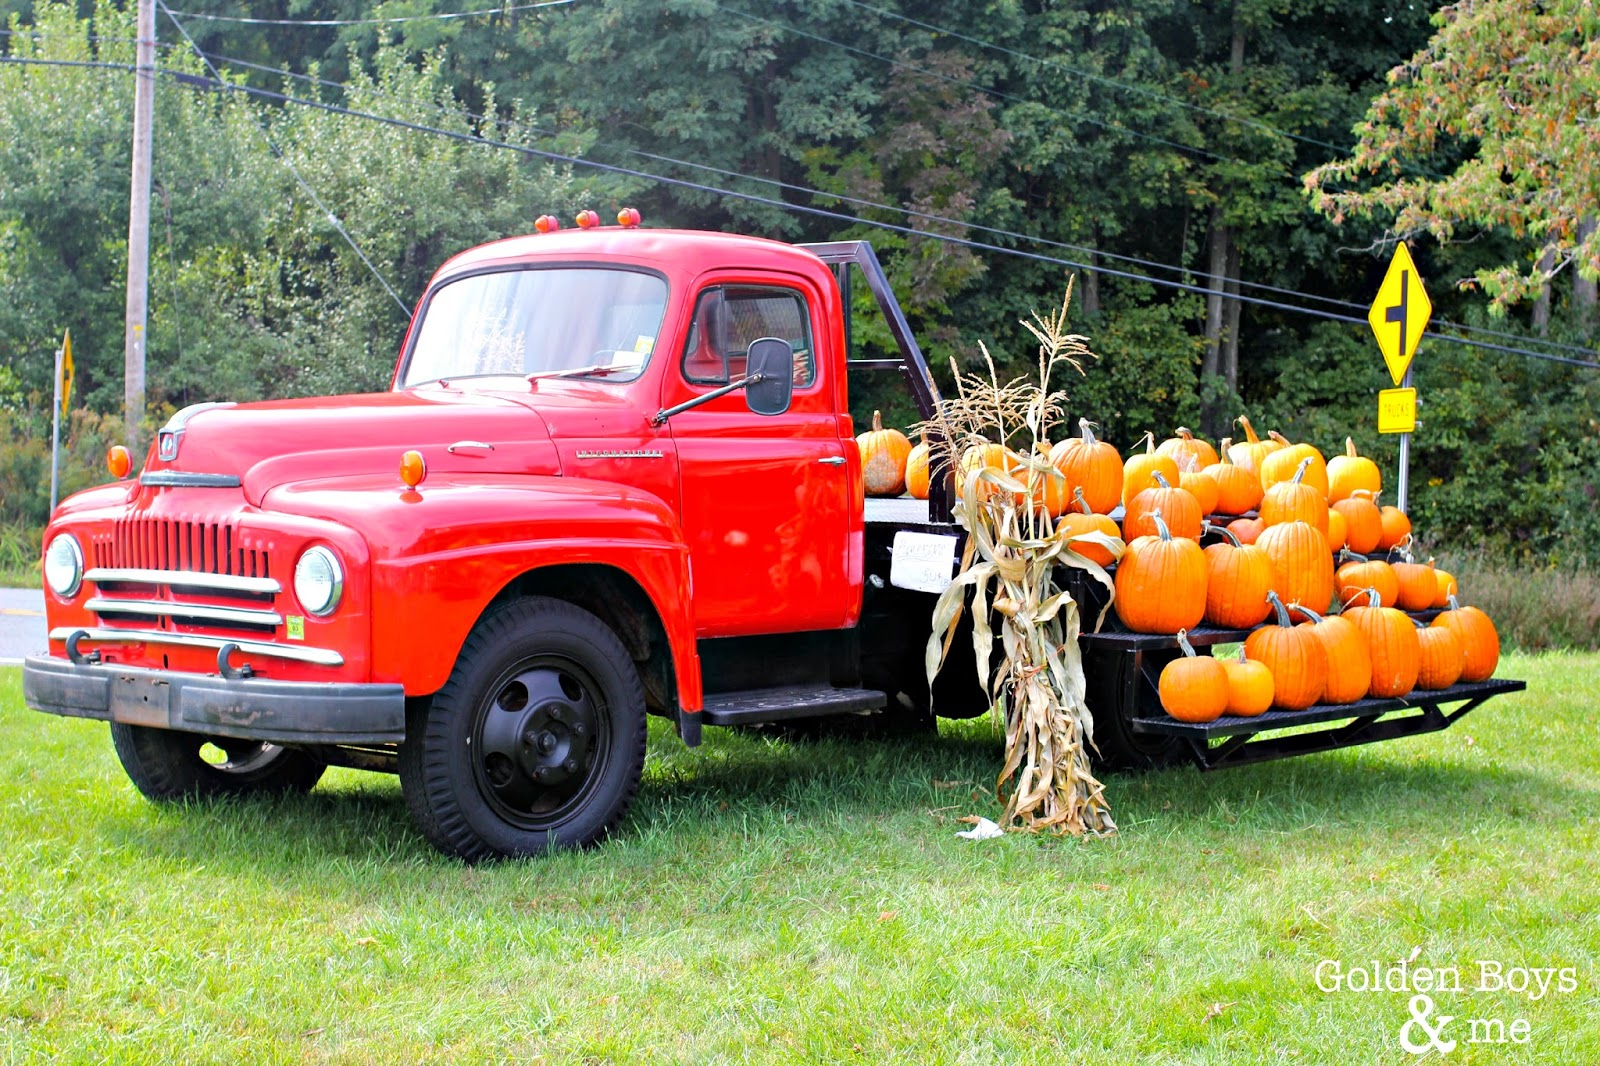 Vintage red pick up truck with pumpkins at Gunnison's Orchard in NY via www.goldenboysandme.com